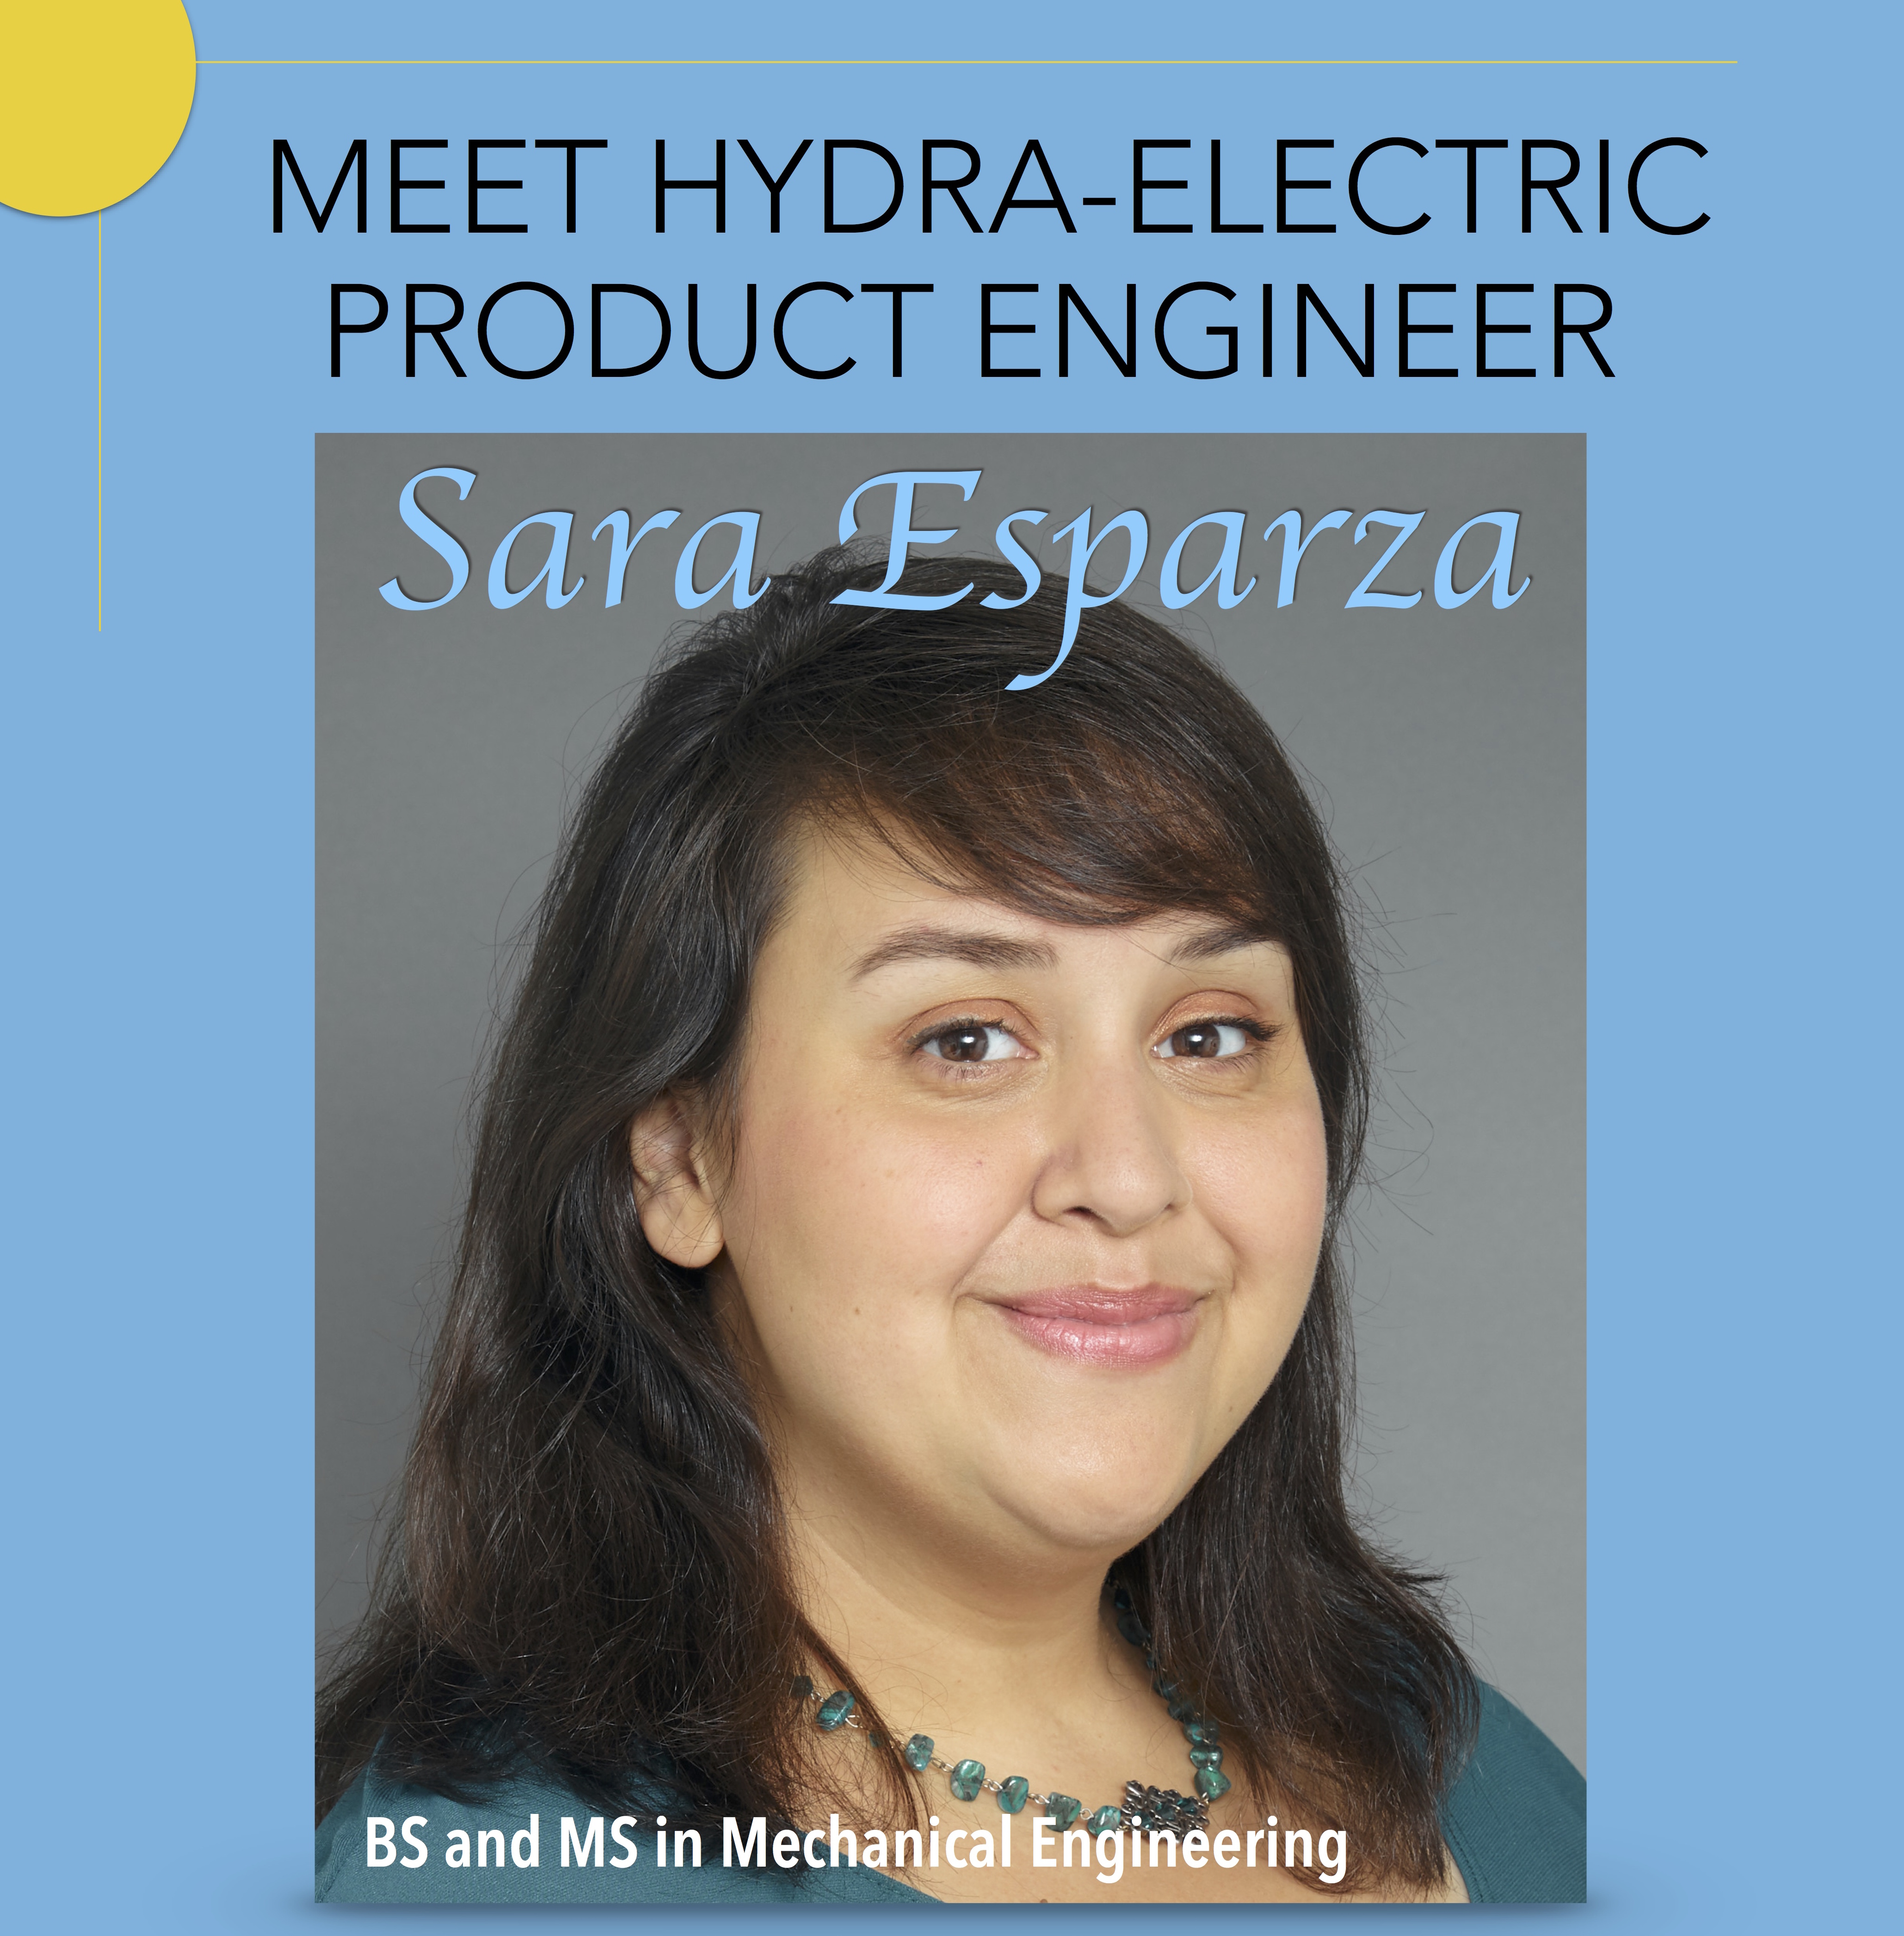 Honoring Women at Hydra-Electric